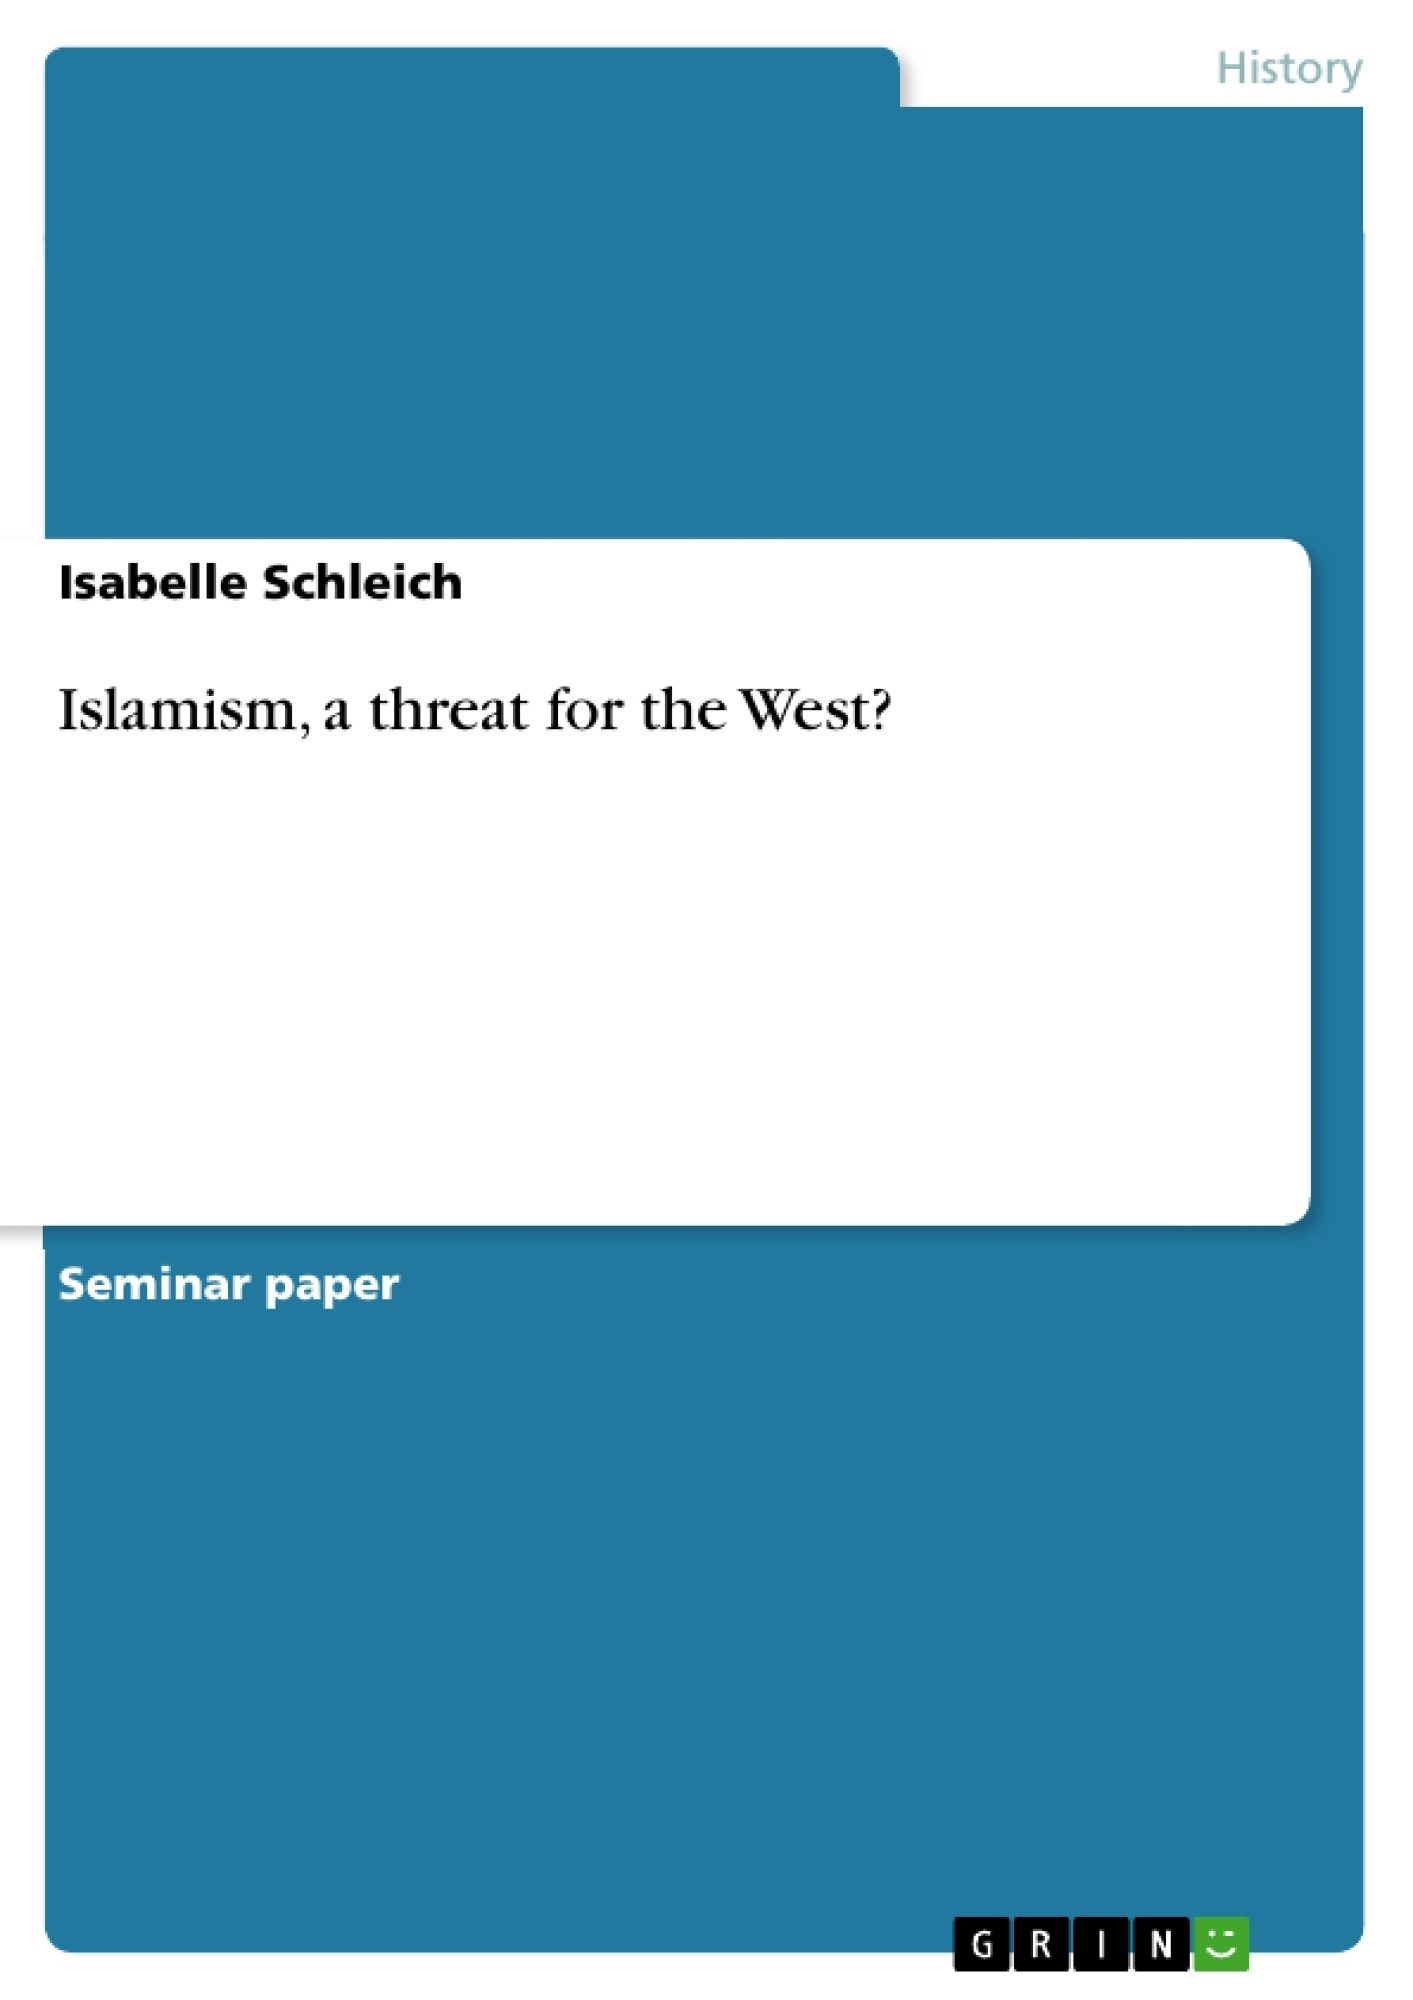 Islamism, a threat for the West?